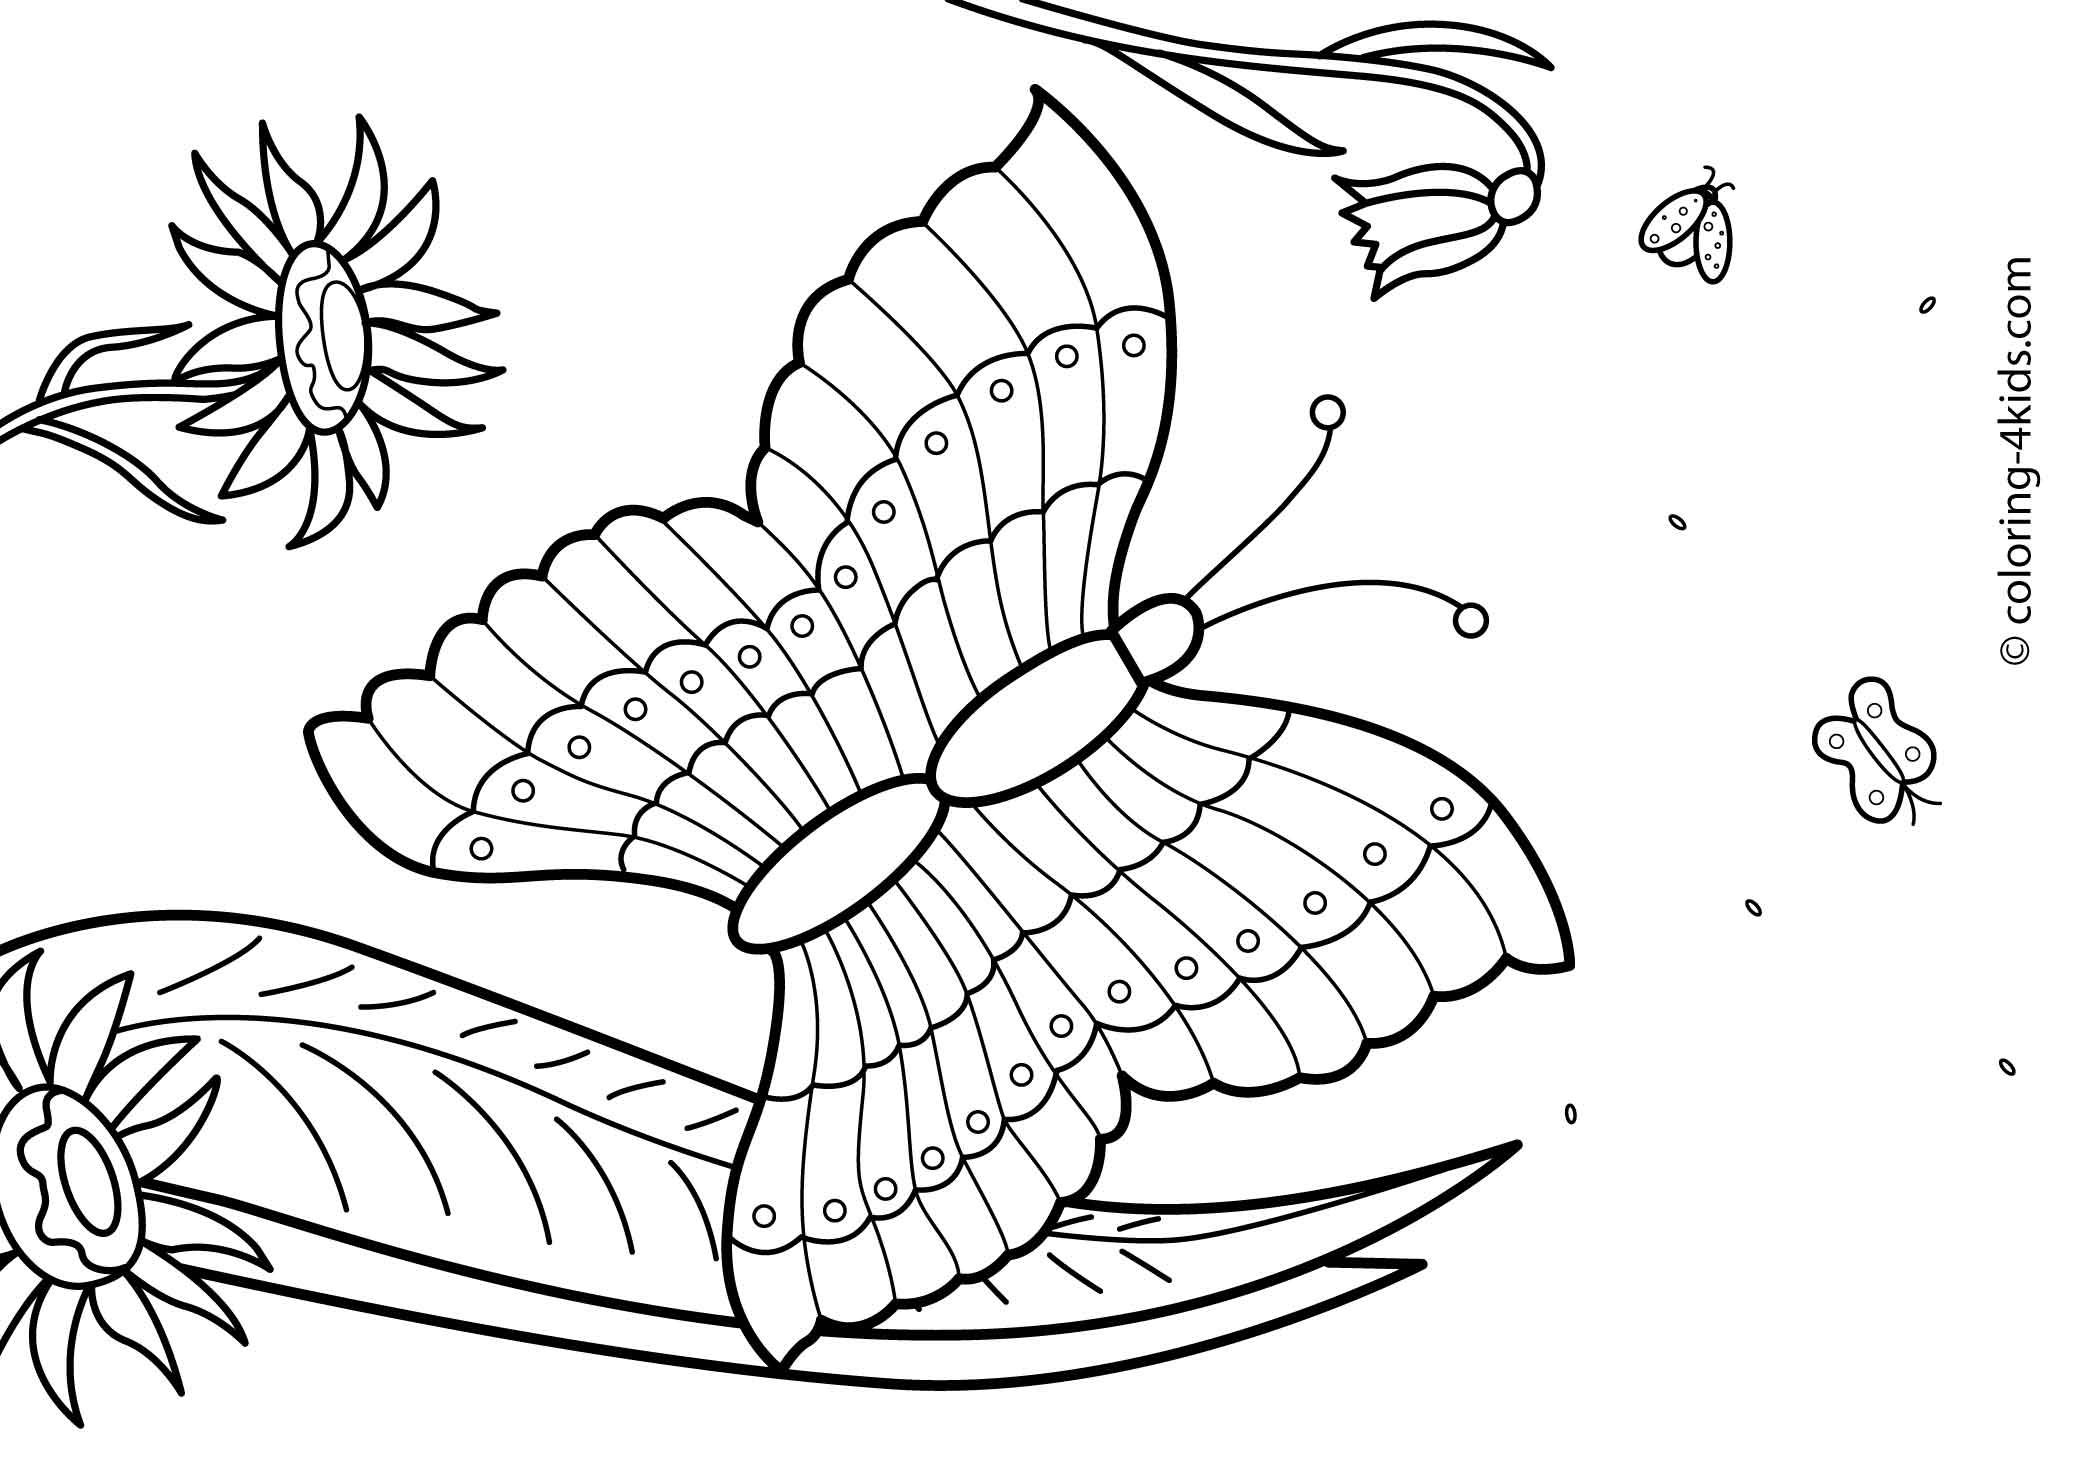 summer coloring worksheet summer coloring pages to download and print for free coloring summer worksheet